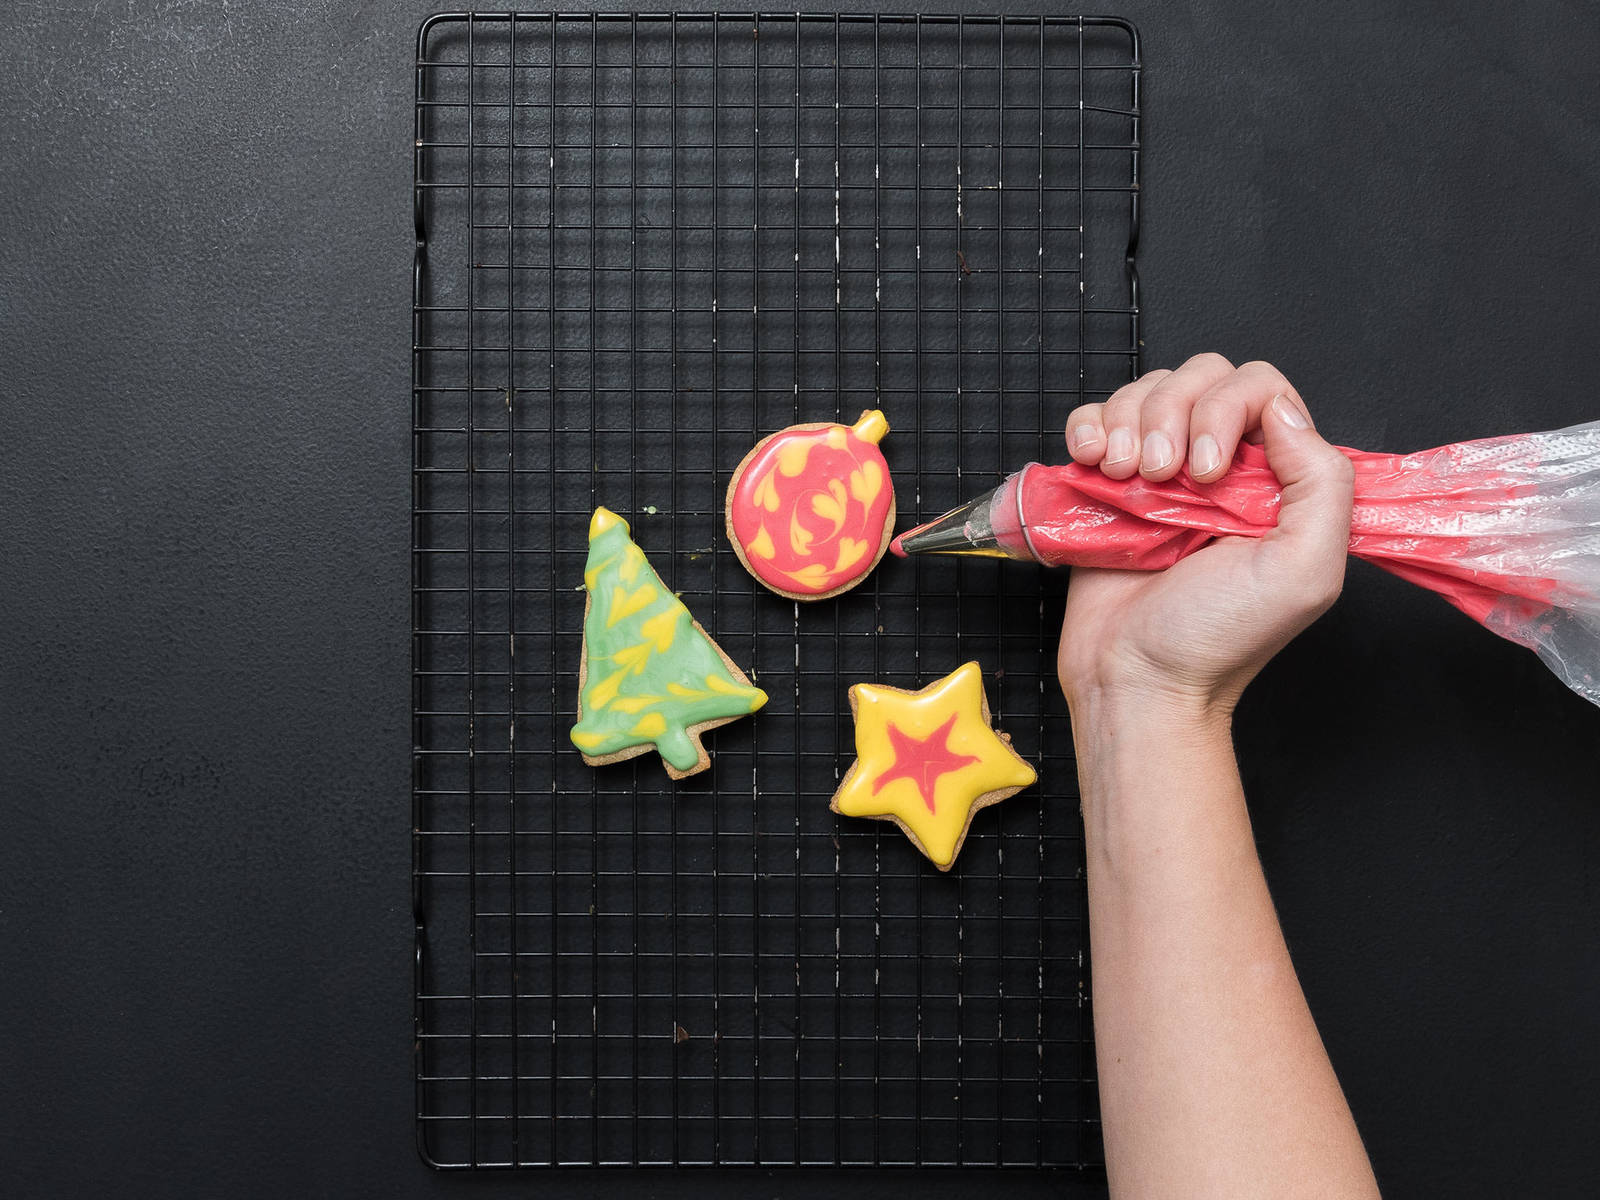 Decorate the cookies with the colorful icing. For a pattern on the icing, apply dots or lines on top of the base layer of icing. Before the icing dries, use a toothpick to pull the top color through the bottom layer in a pattern you like. Allow to dry over night before packaging. Enjoy!